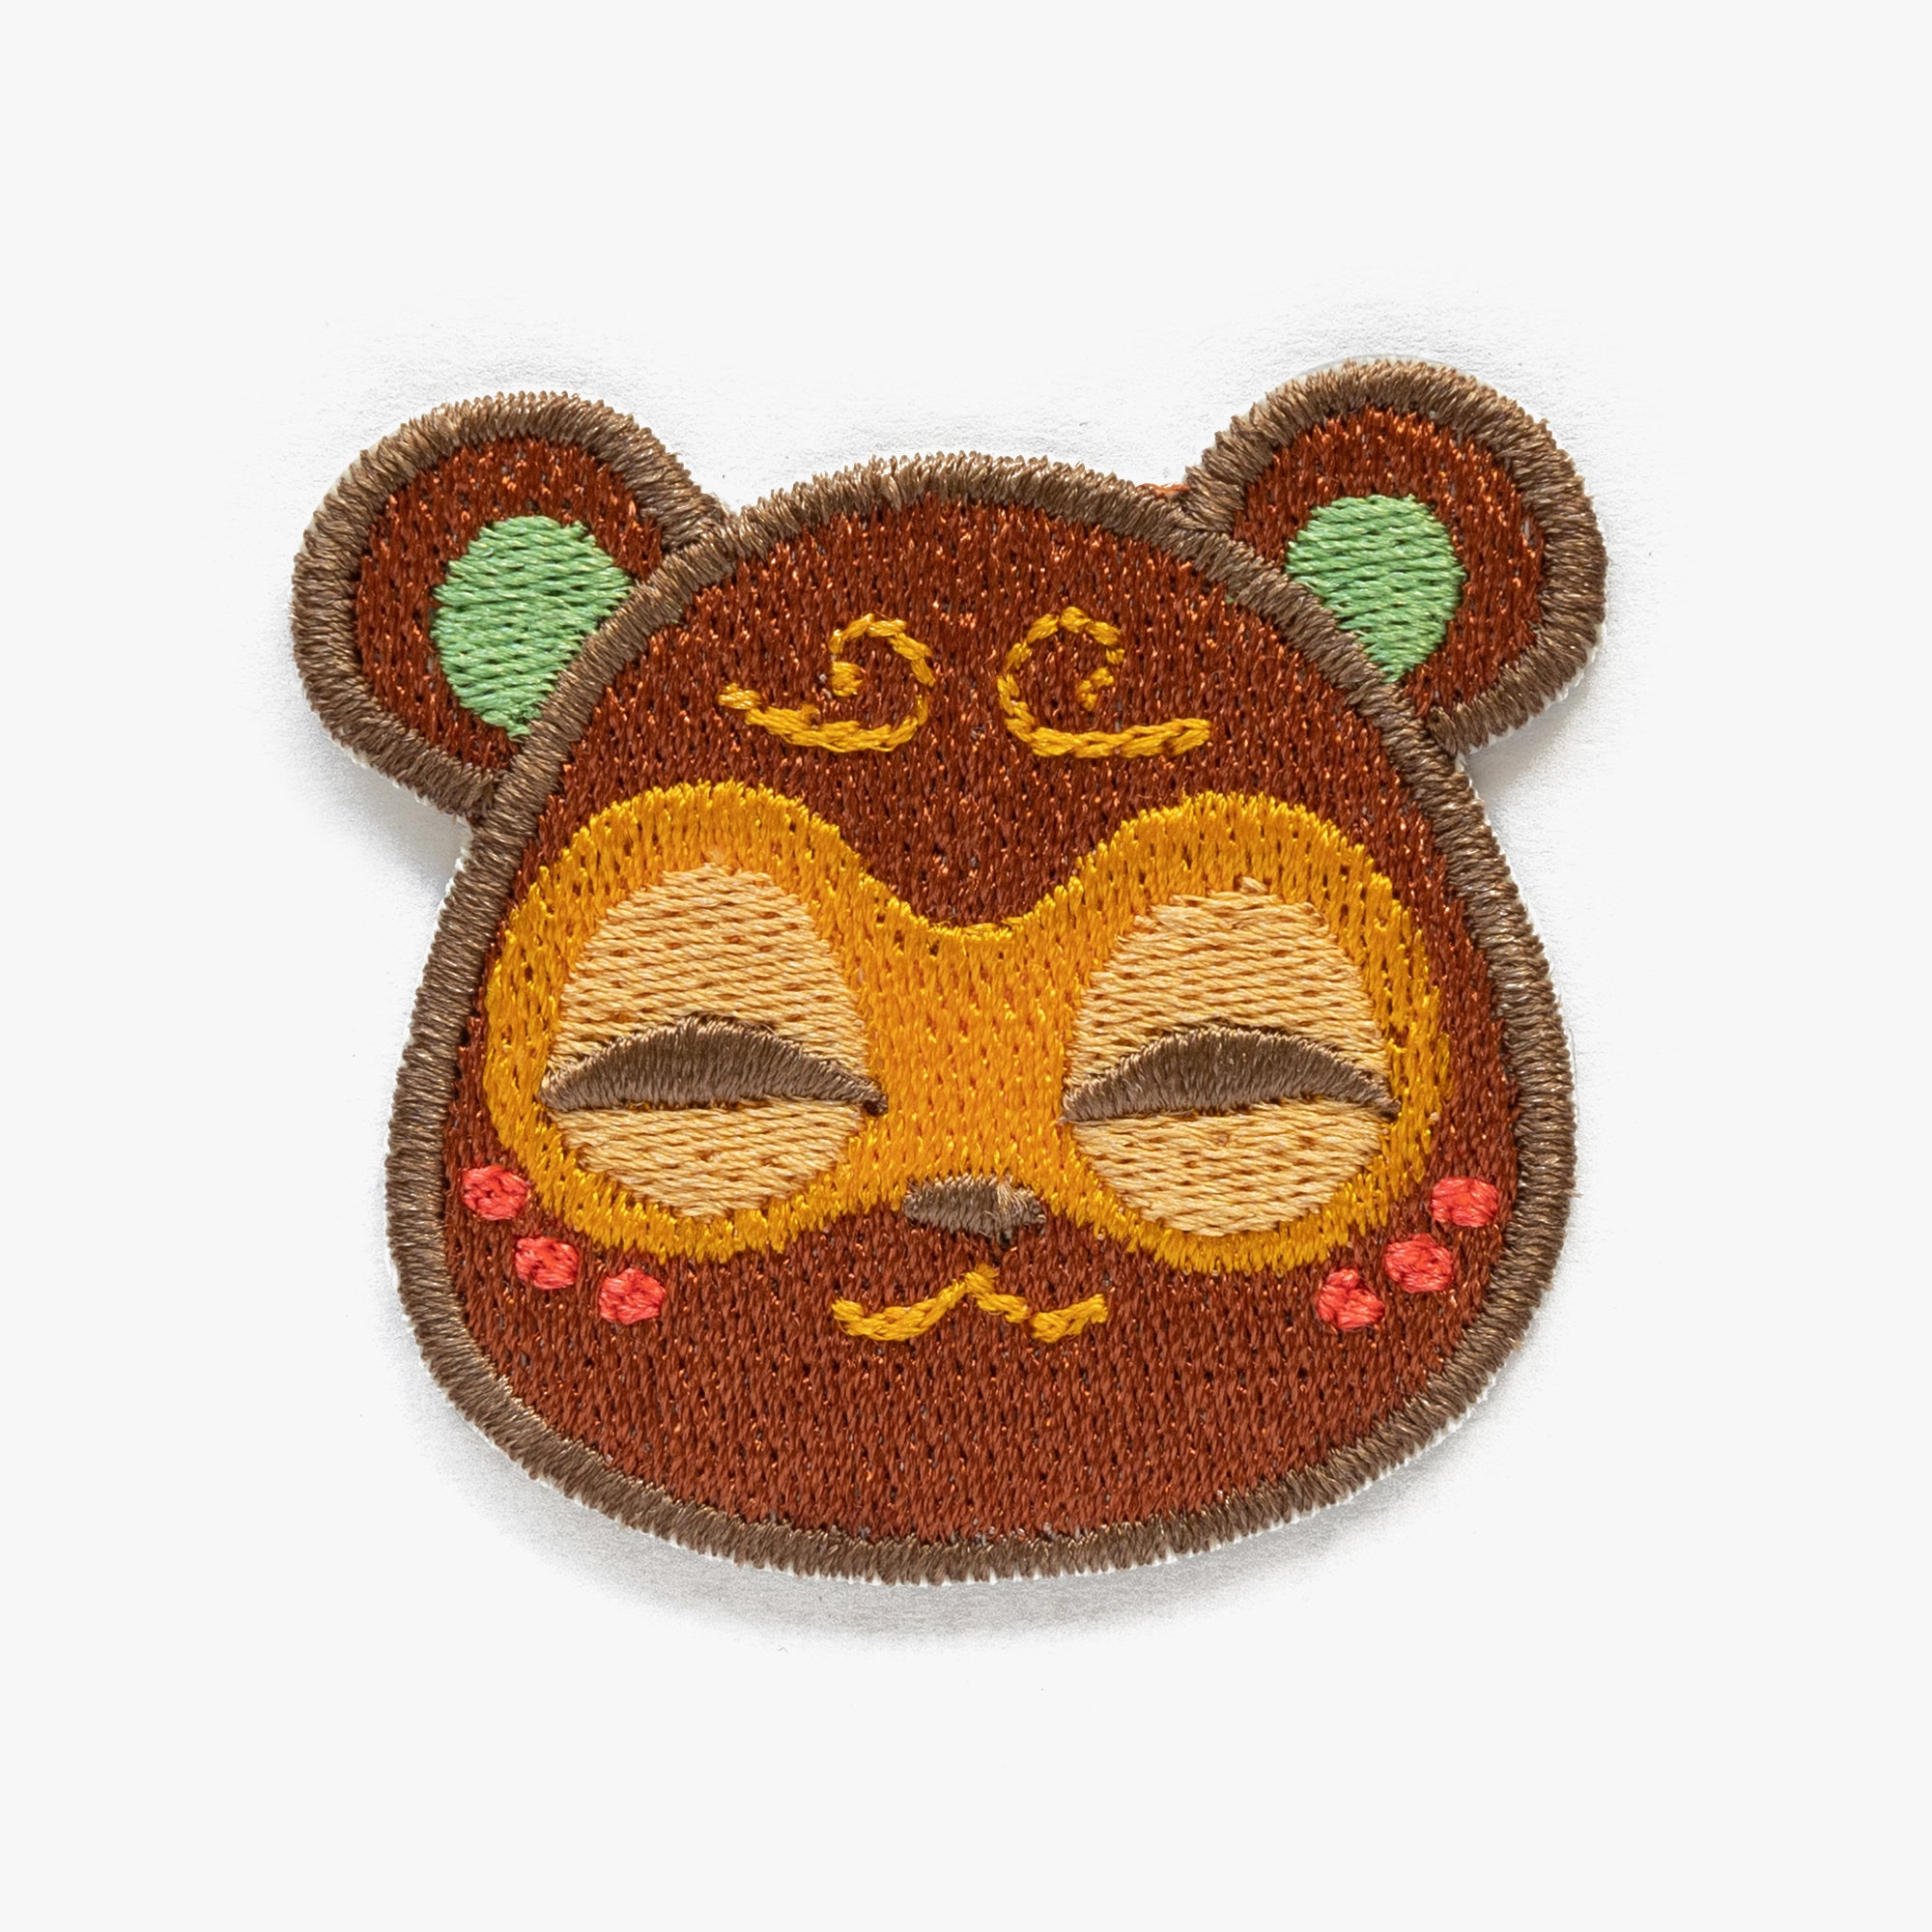 Clay Animal Crossing Embroidered Patch (Homemade)